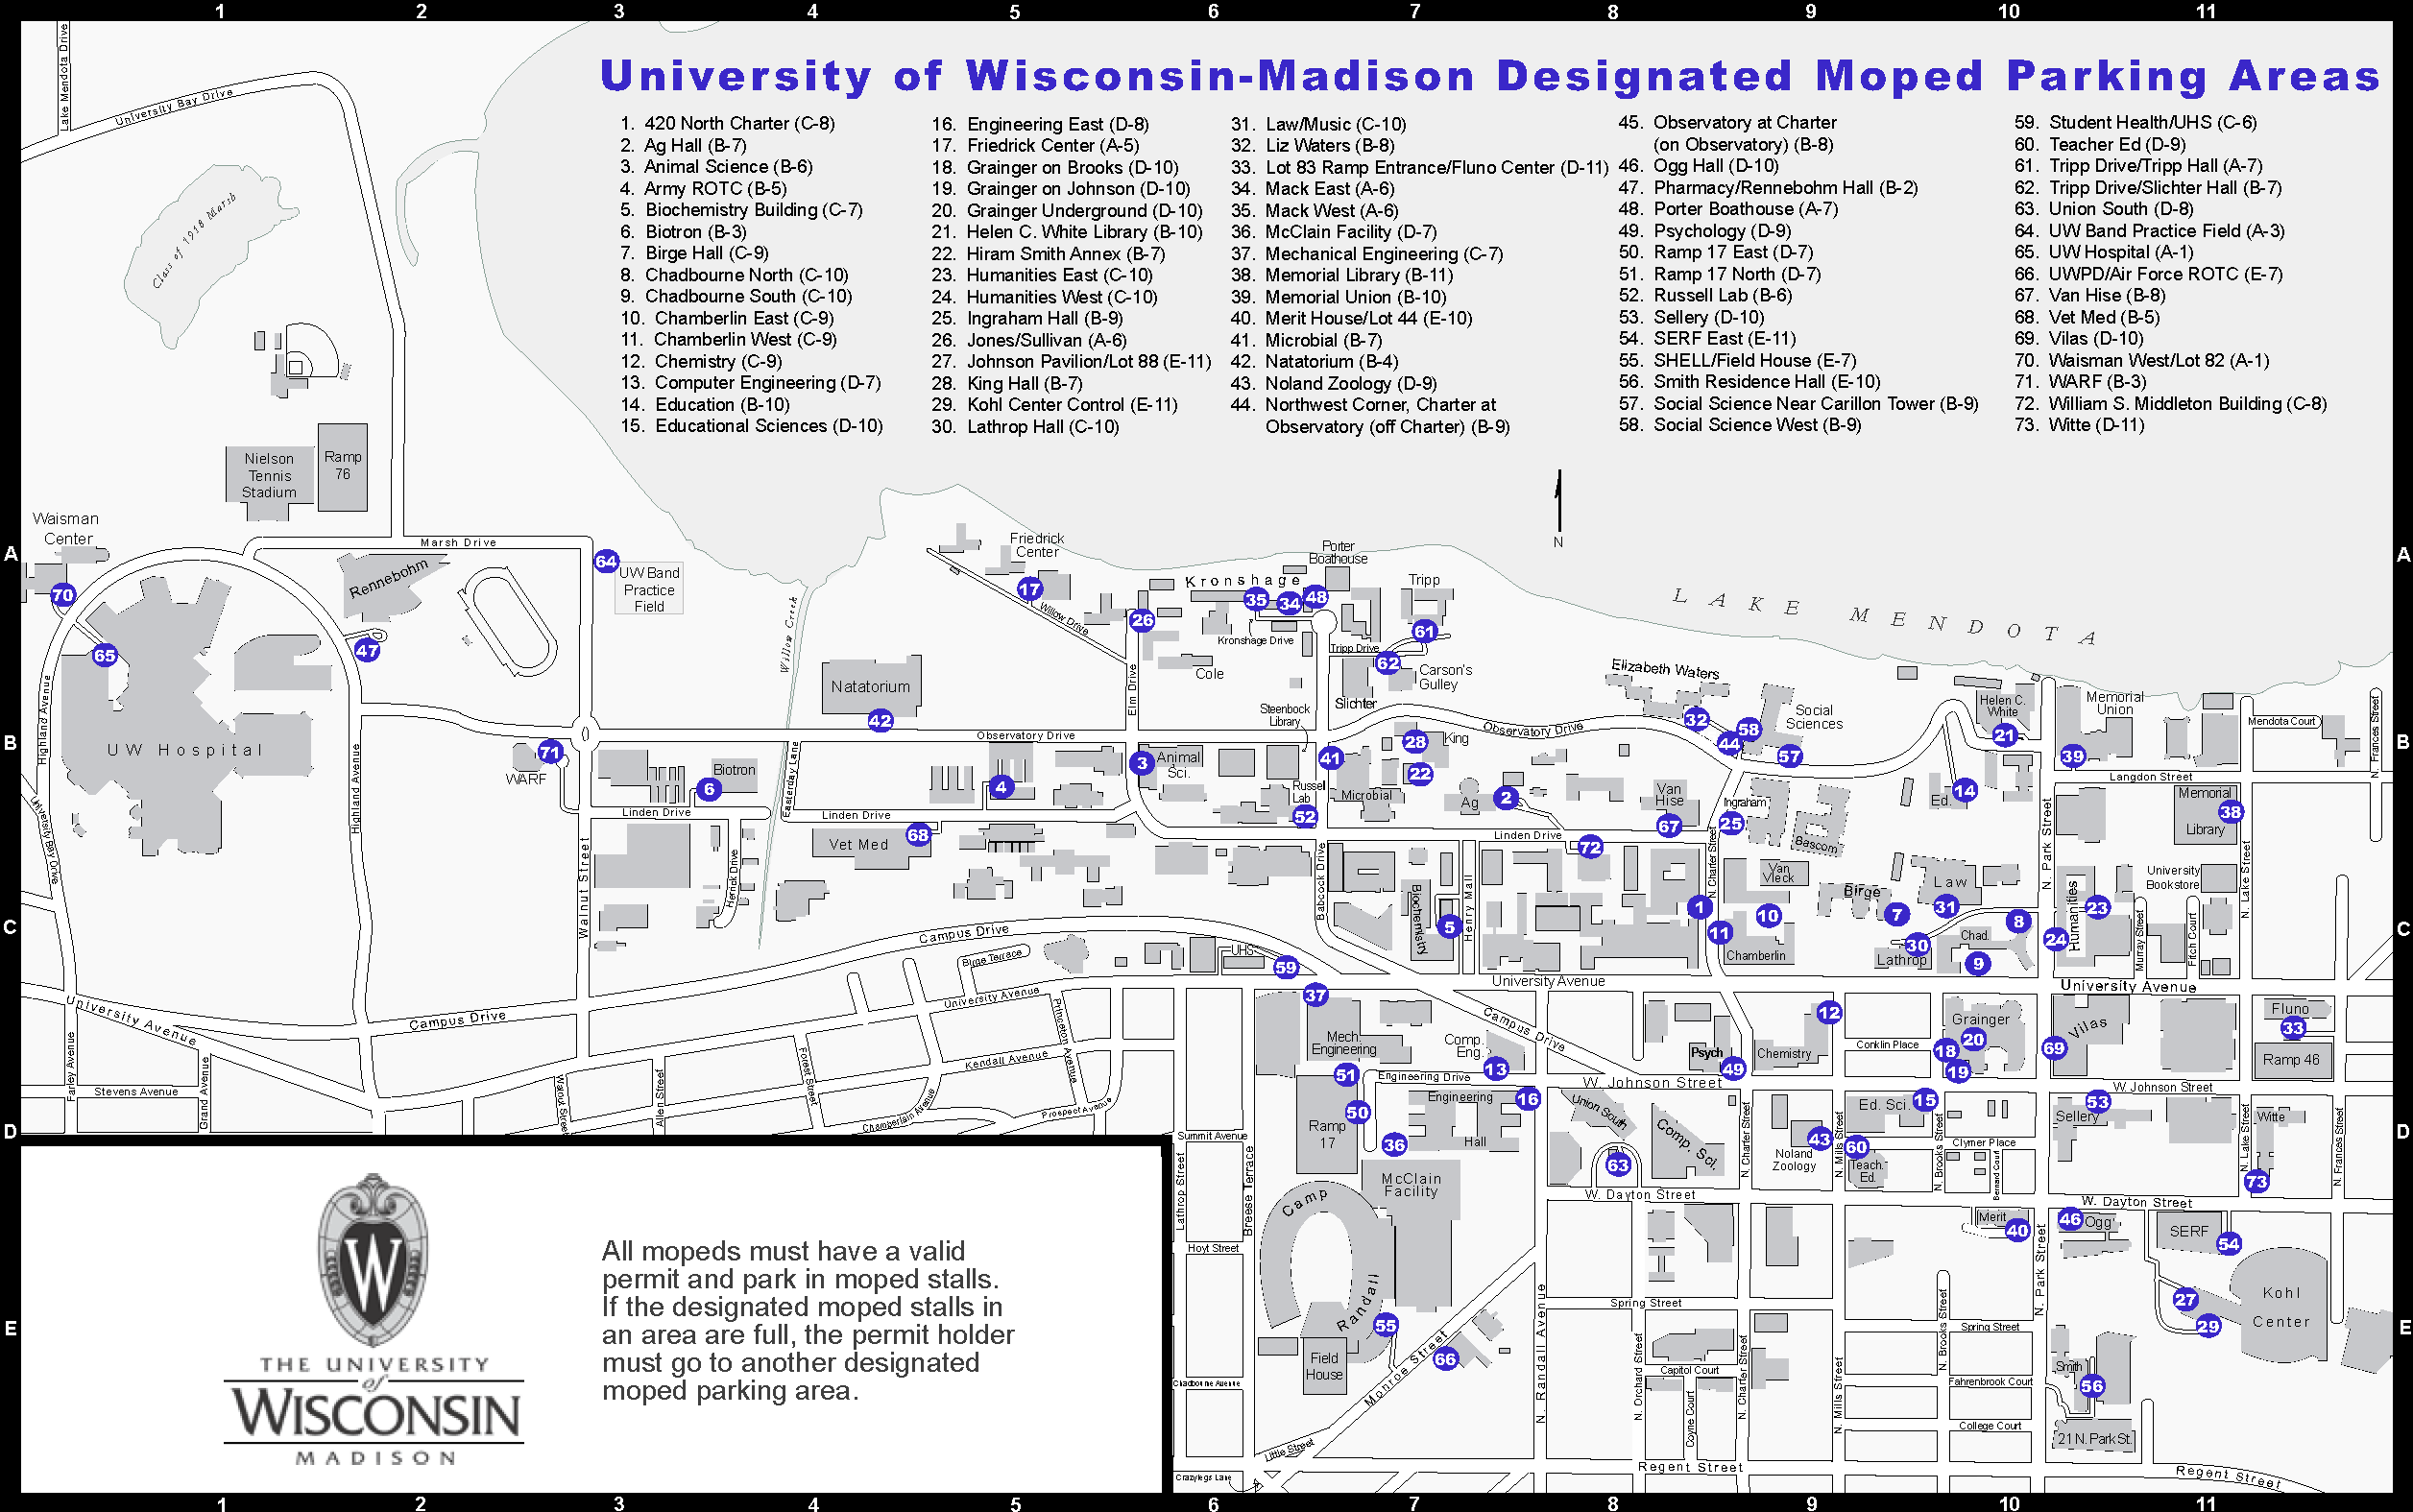 Uw Madison Parking Map Colter Sikora 2008 Moped Parking Map | Colterrific Maps! (a portfolio)